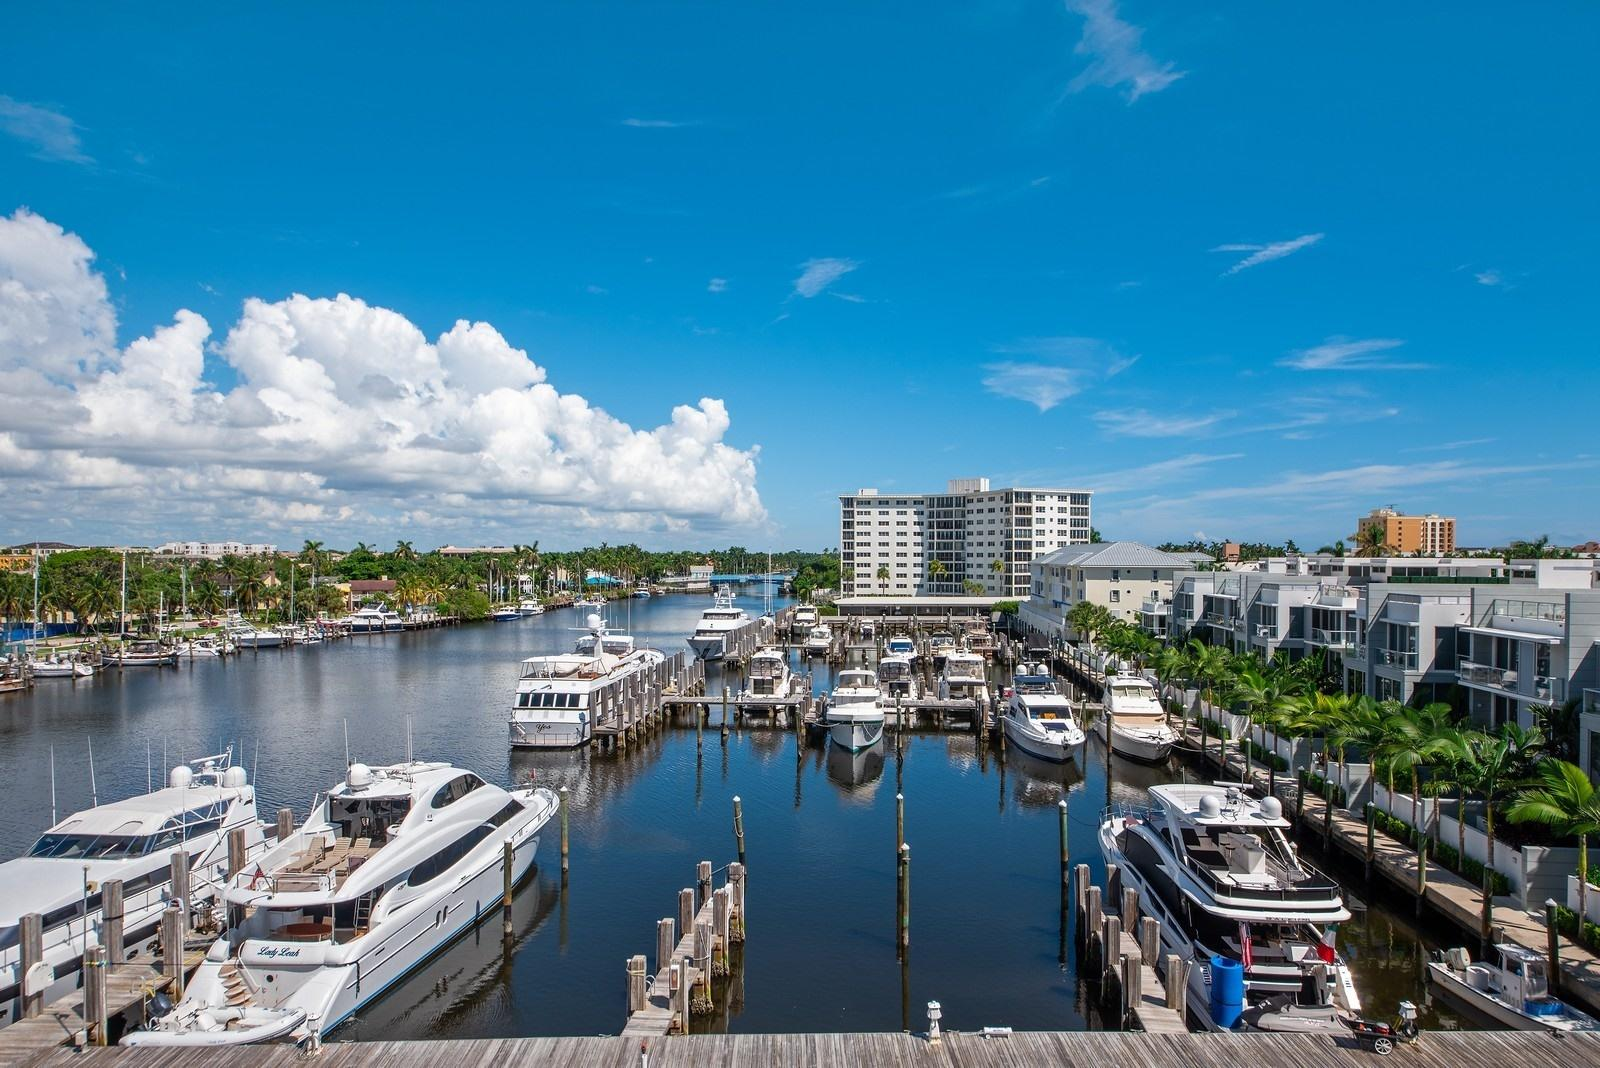 Beautiful unobstructed views of the yacht club north & the intracoastal south from this 5th floor unit that has 2 balconies. Features include, hardwood flooring throughout, renovated bathrooms, newer AC, & new washer/dryer.  Seagate Towers is situated wonderfully... just 2 blocks from Atlantic Ave & the beach. Boat dockage is available and included in the maint! Impact Glass windows, door man, exercise room & social room overlooks the large pool area along the waterway. Shows great, this unit is immaculate!